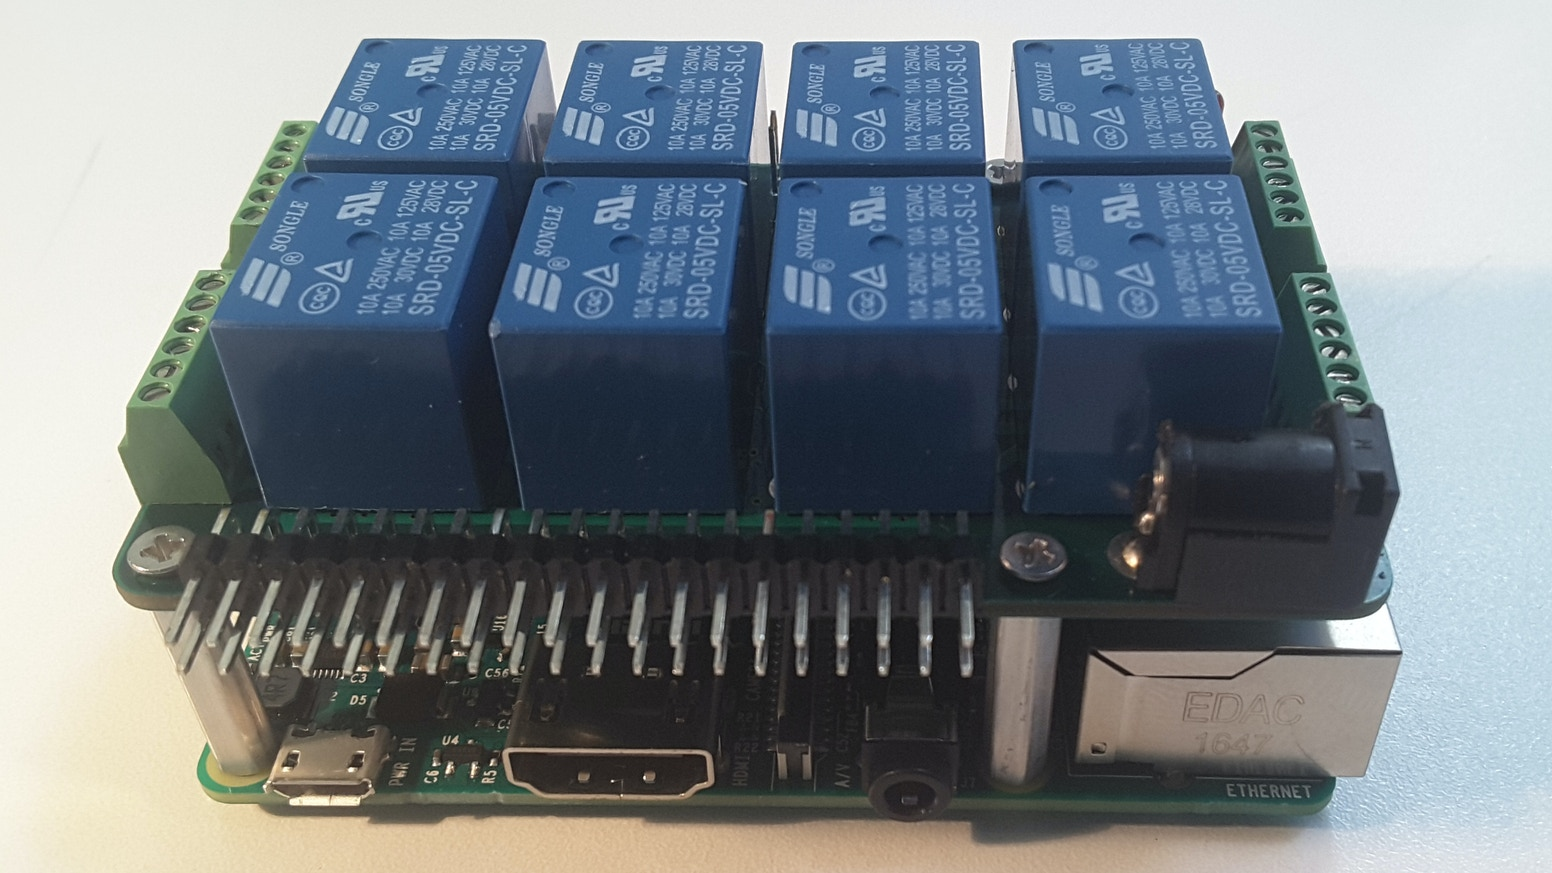 Raspberry Pi Mega Io Expansion Card By Mihai Beffa Startup Wiringpi Install Eight On Board Relays 8 12 Bit Adc Channels12